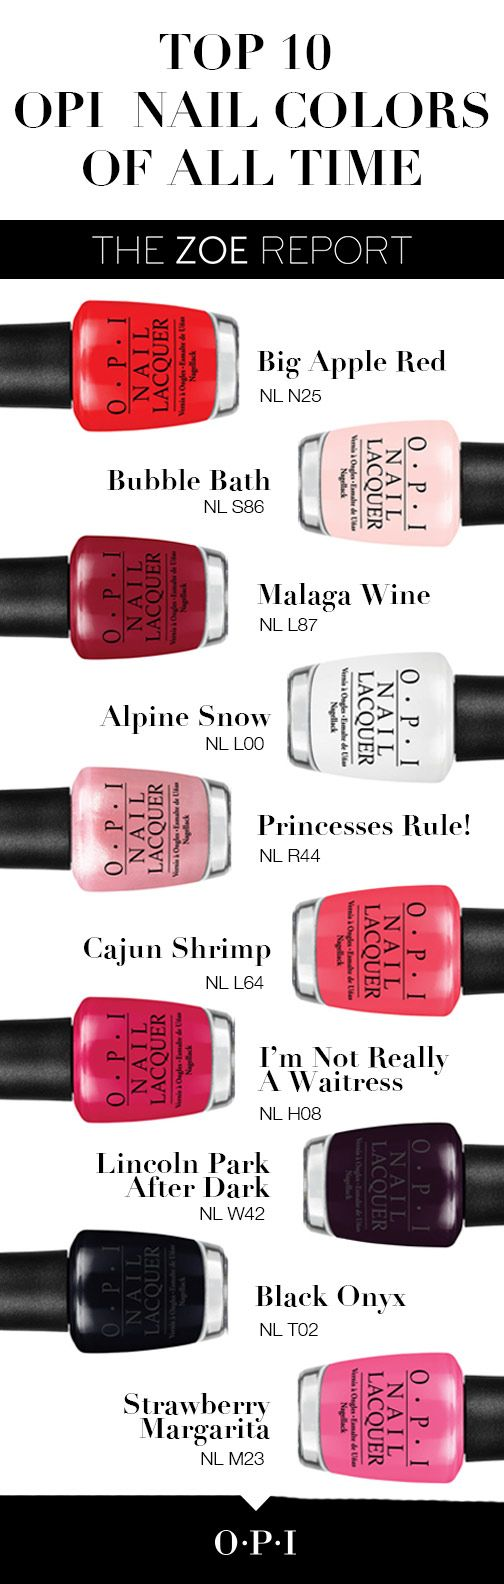 The Top 10 OPI Nail Colors Of All Time | OPI, Make up and Opi nails